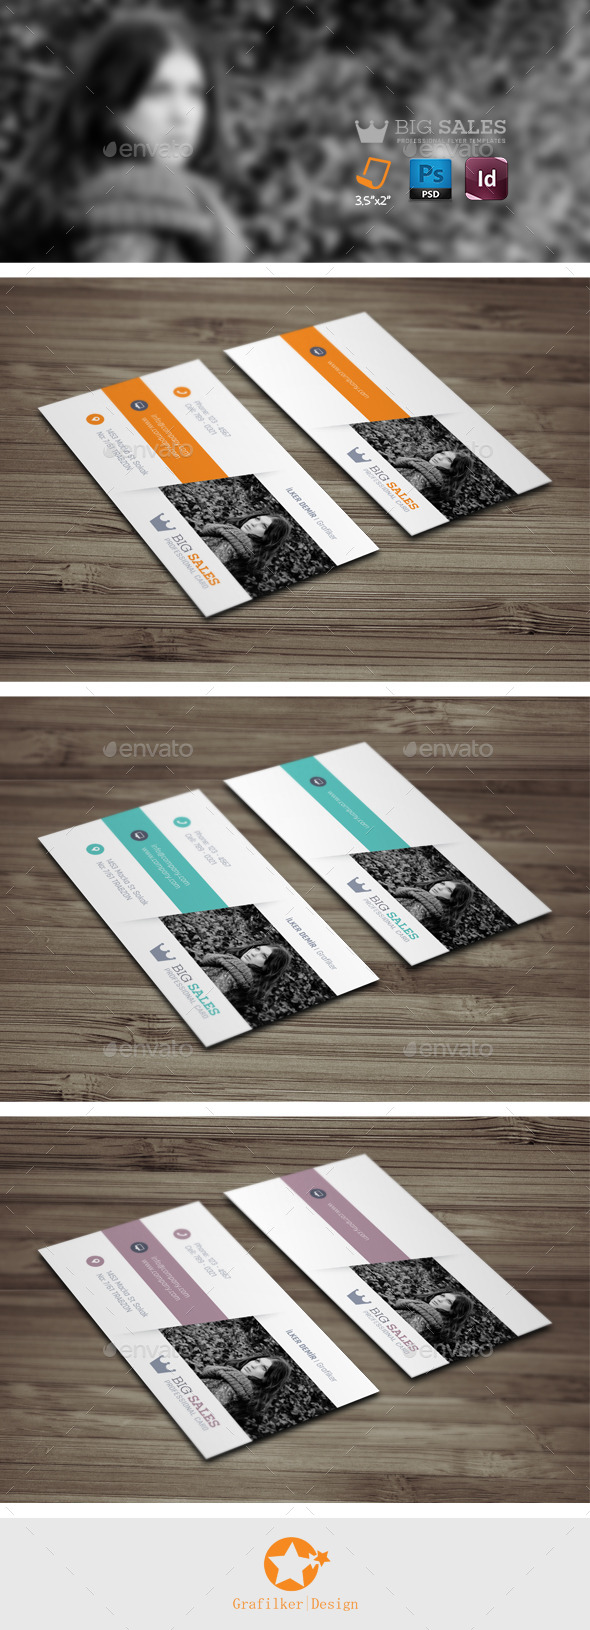 Shopping Business Card Templates - Business Cards Print Templates